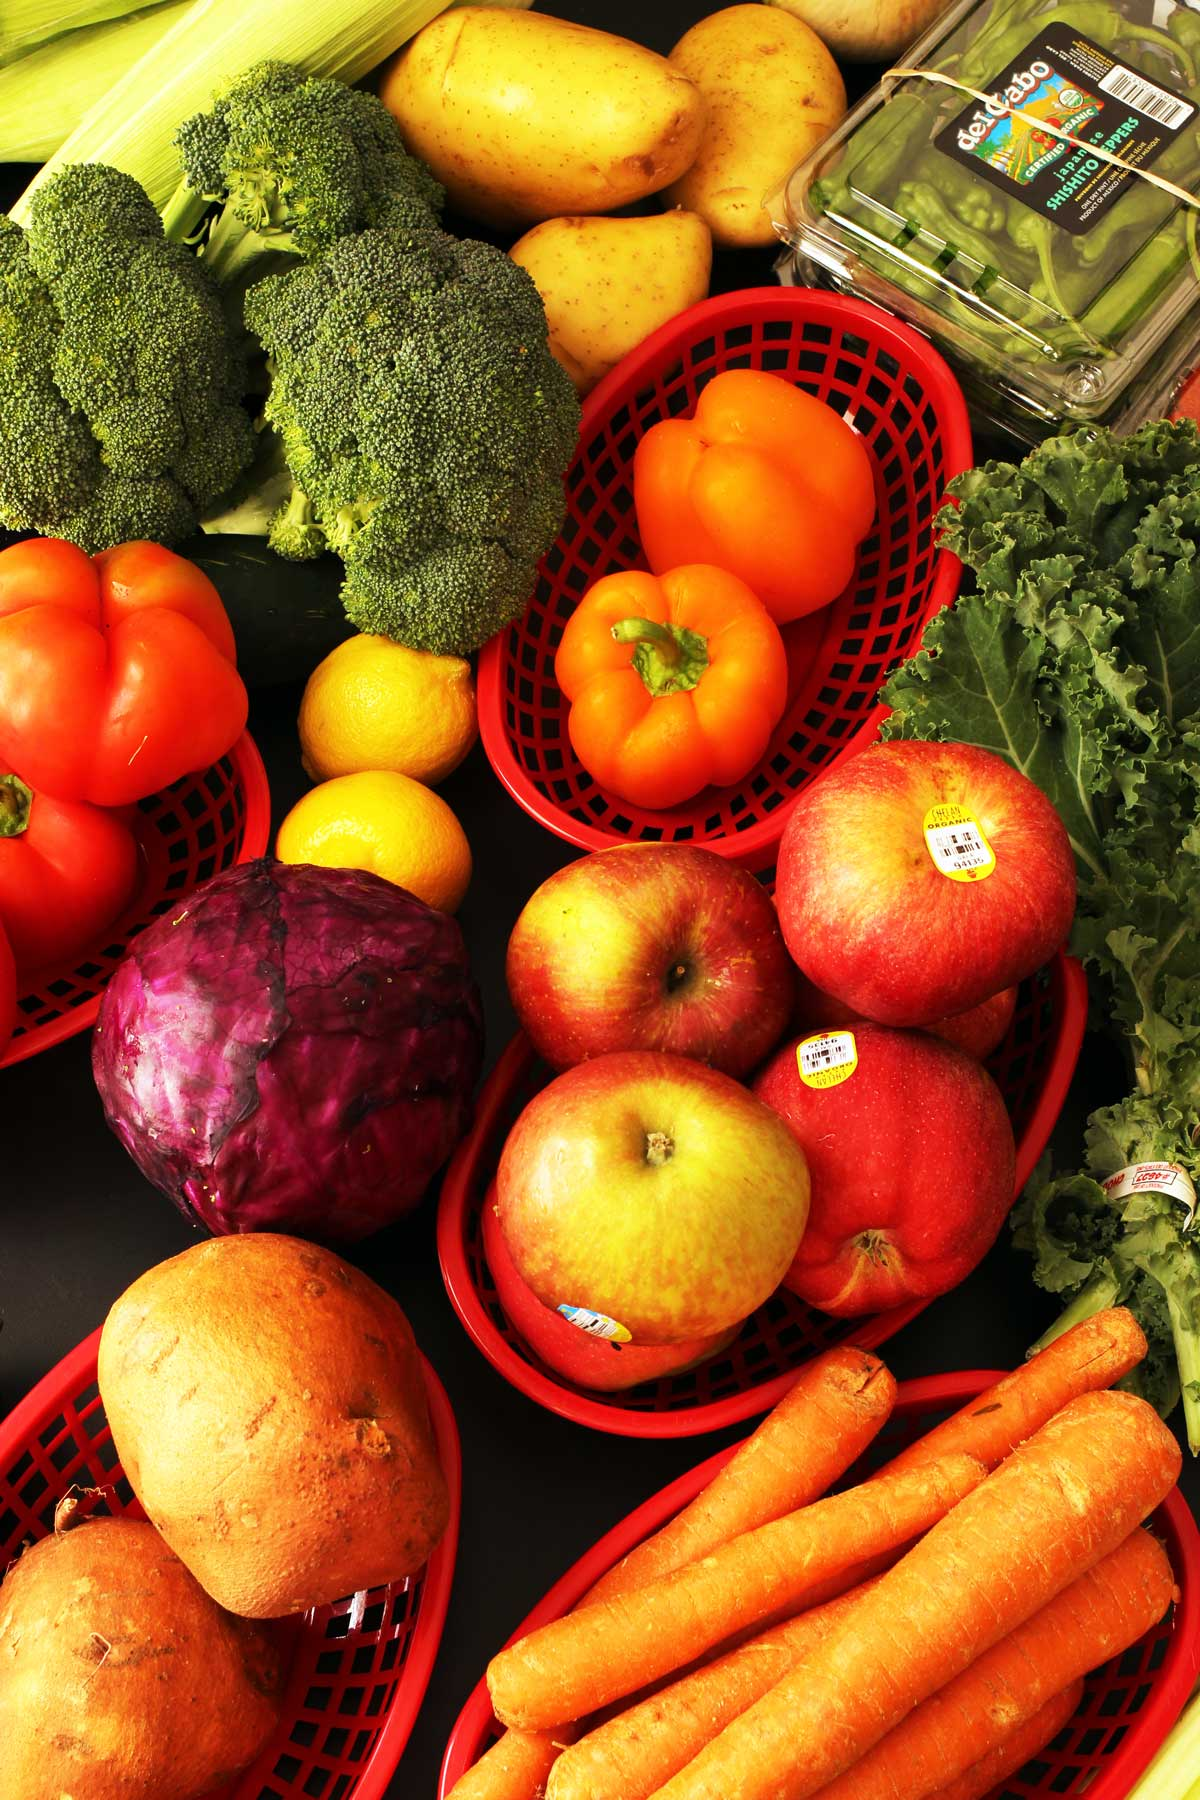 array of fruits and vegetables sorted into red plastic baskets.